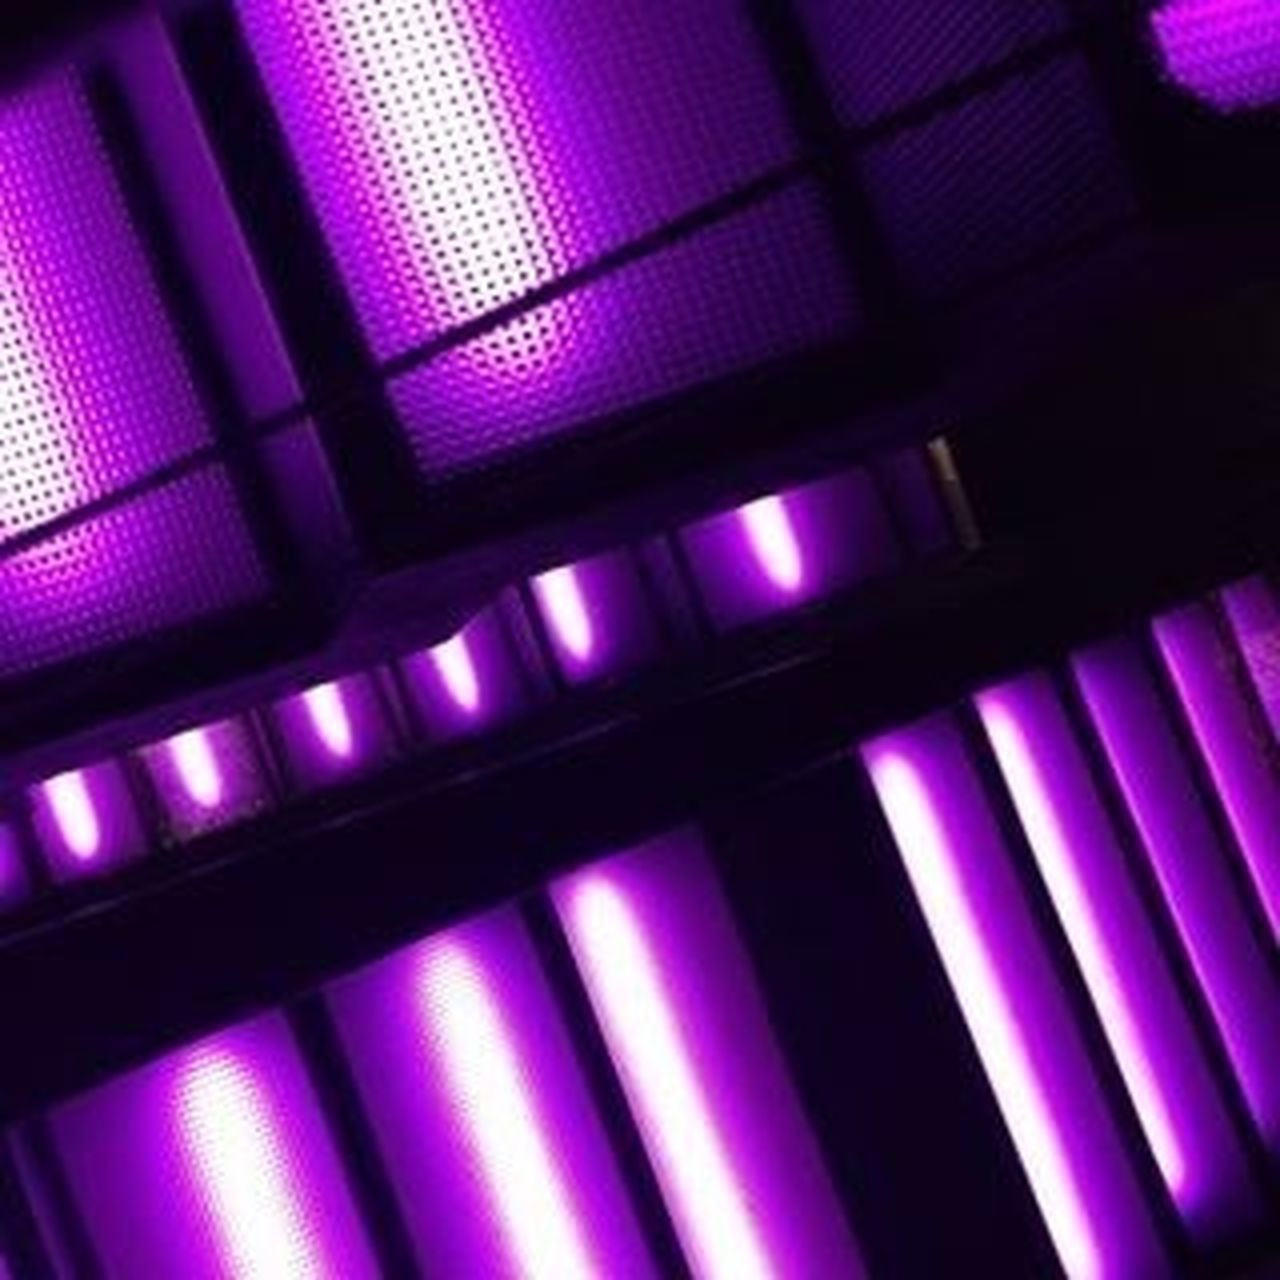 backgrounds, purple, no people, beauty, indoors, illuminated, close-up, technology, neon, day